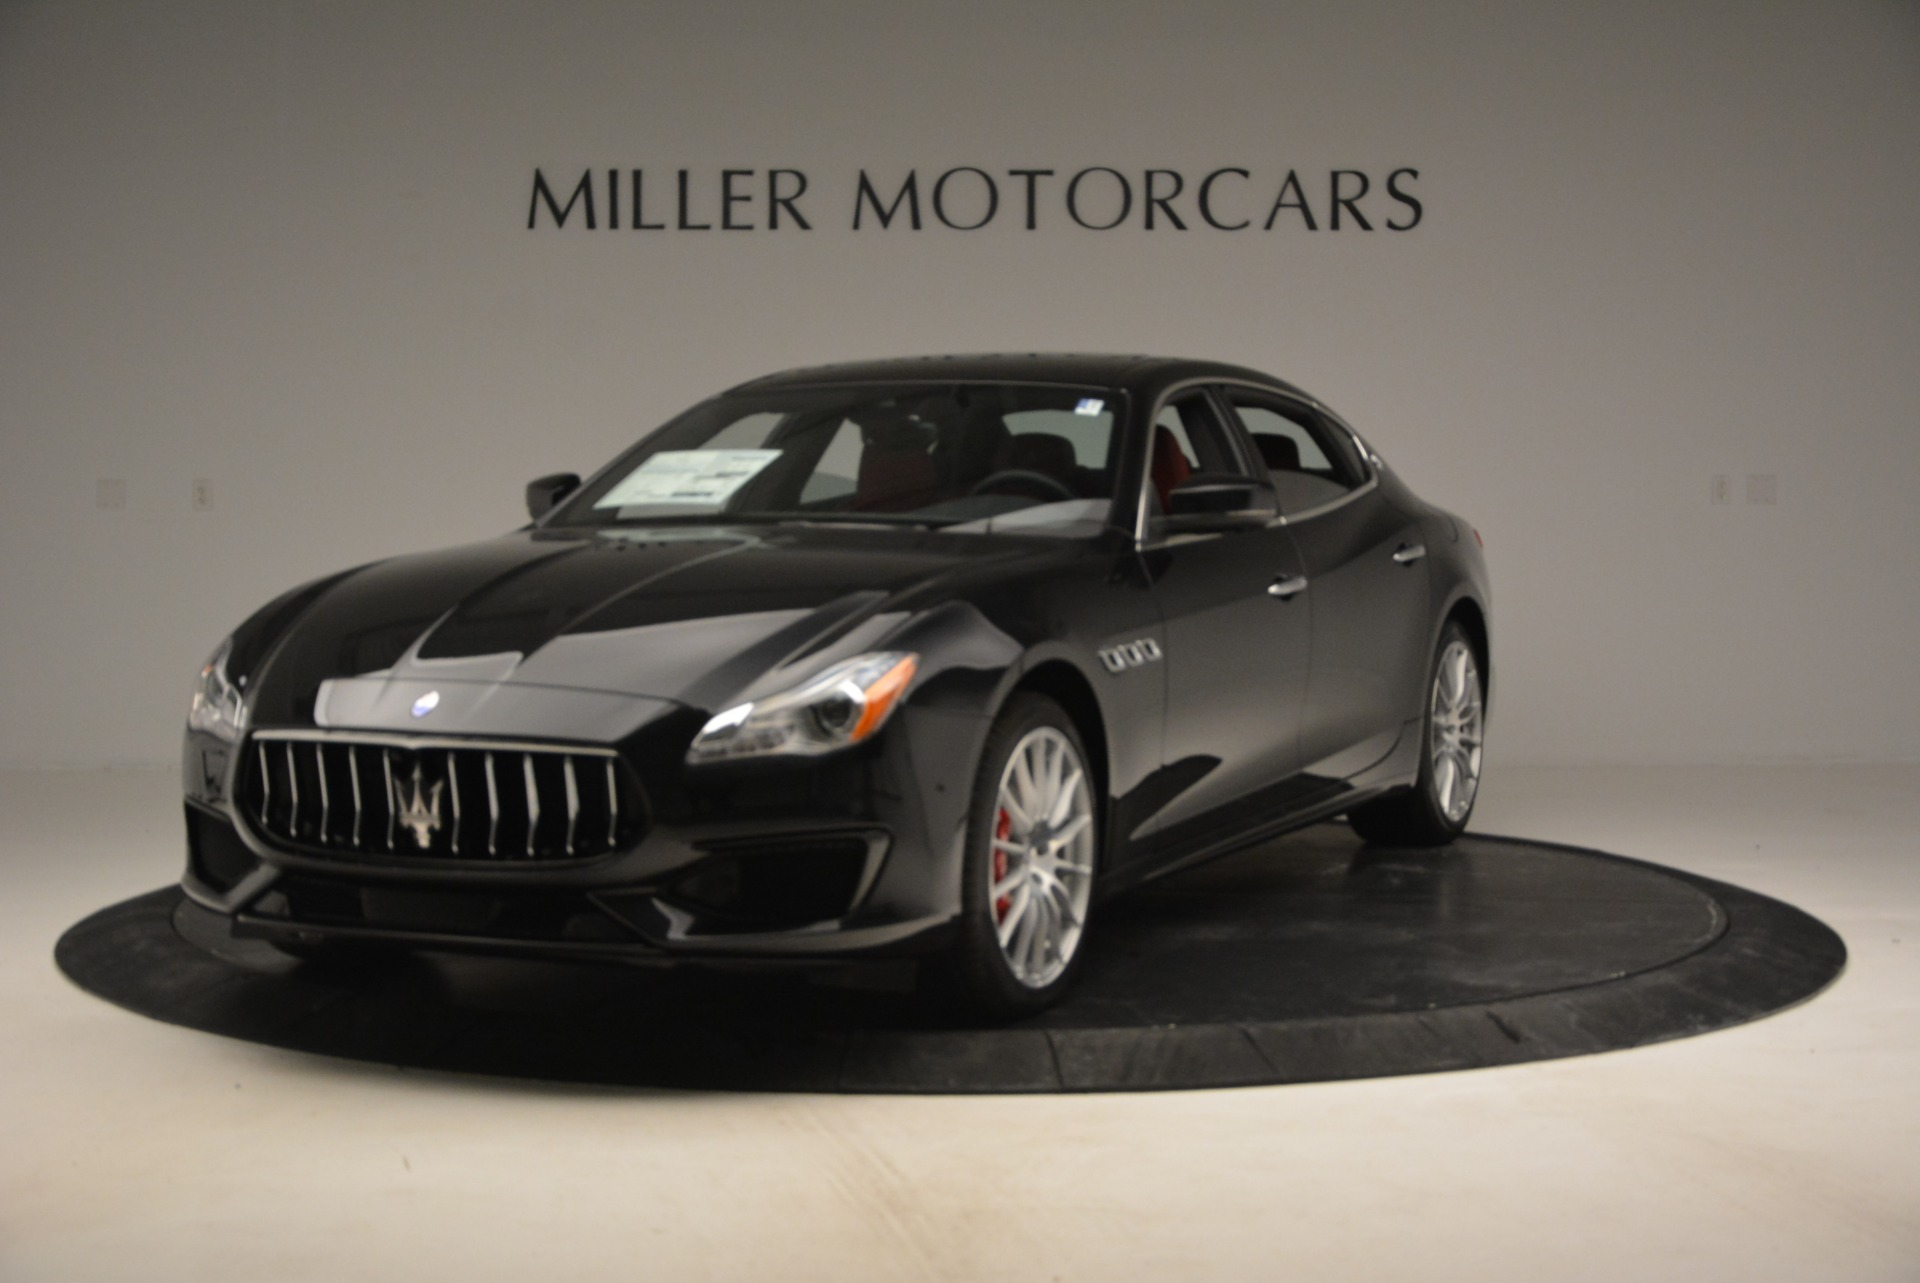 New 2017 Maserati Quattroporte S Q4 GranSport for sale Sold at Pagani of Greenwich in Greenwich CT 06830 1